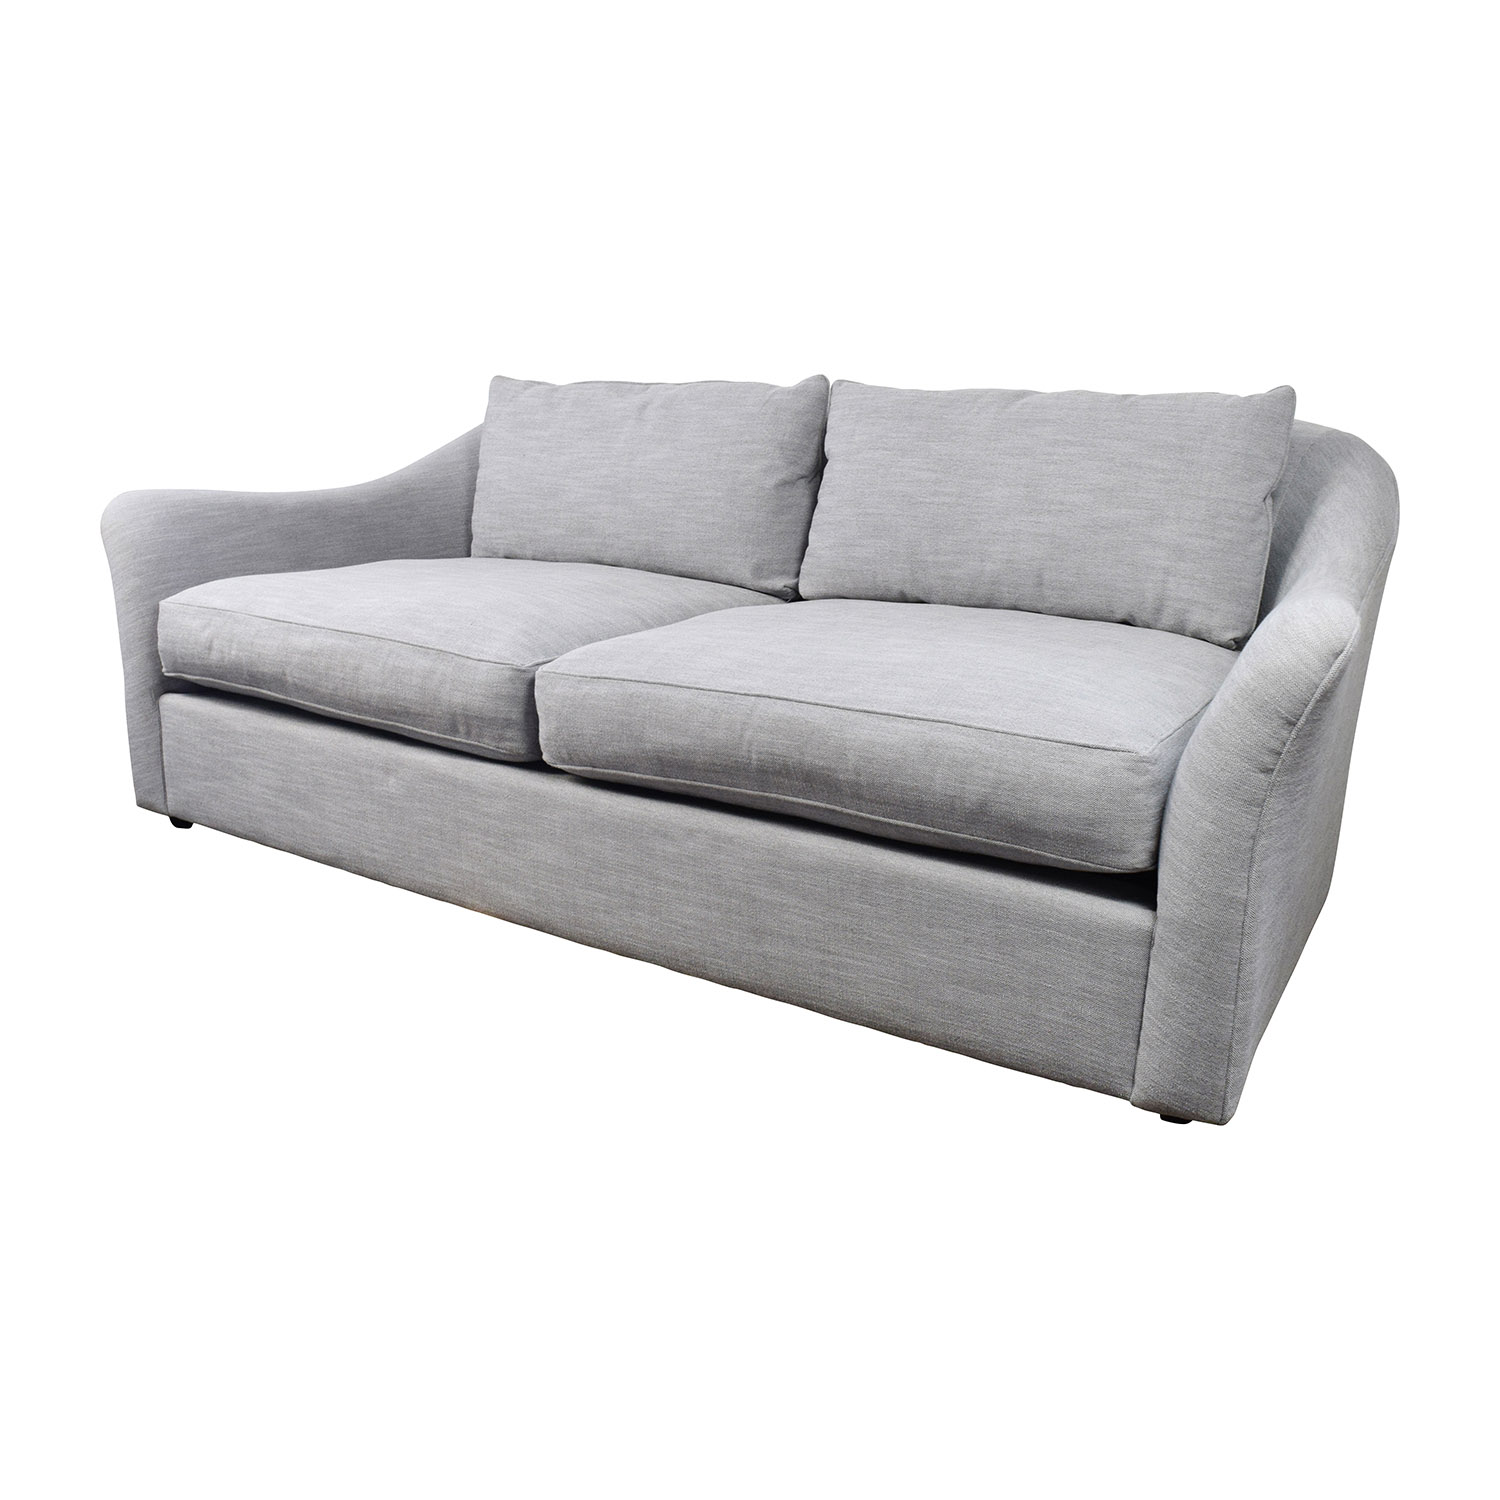 Delaney sofa dhp delaney sofa sleeper multiple colors for Best west elm sofa